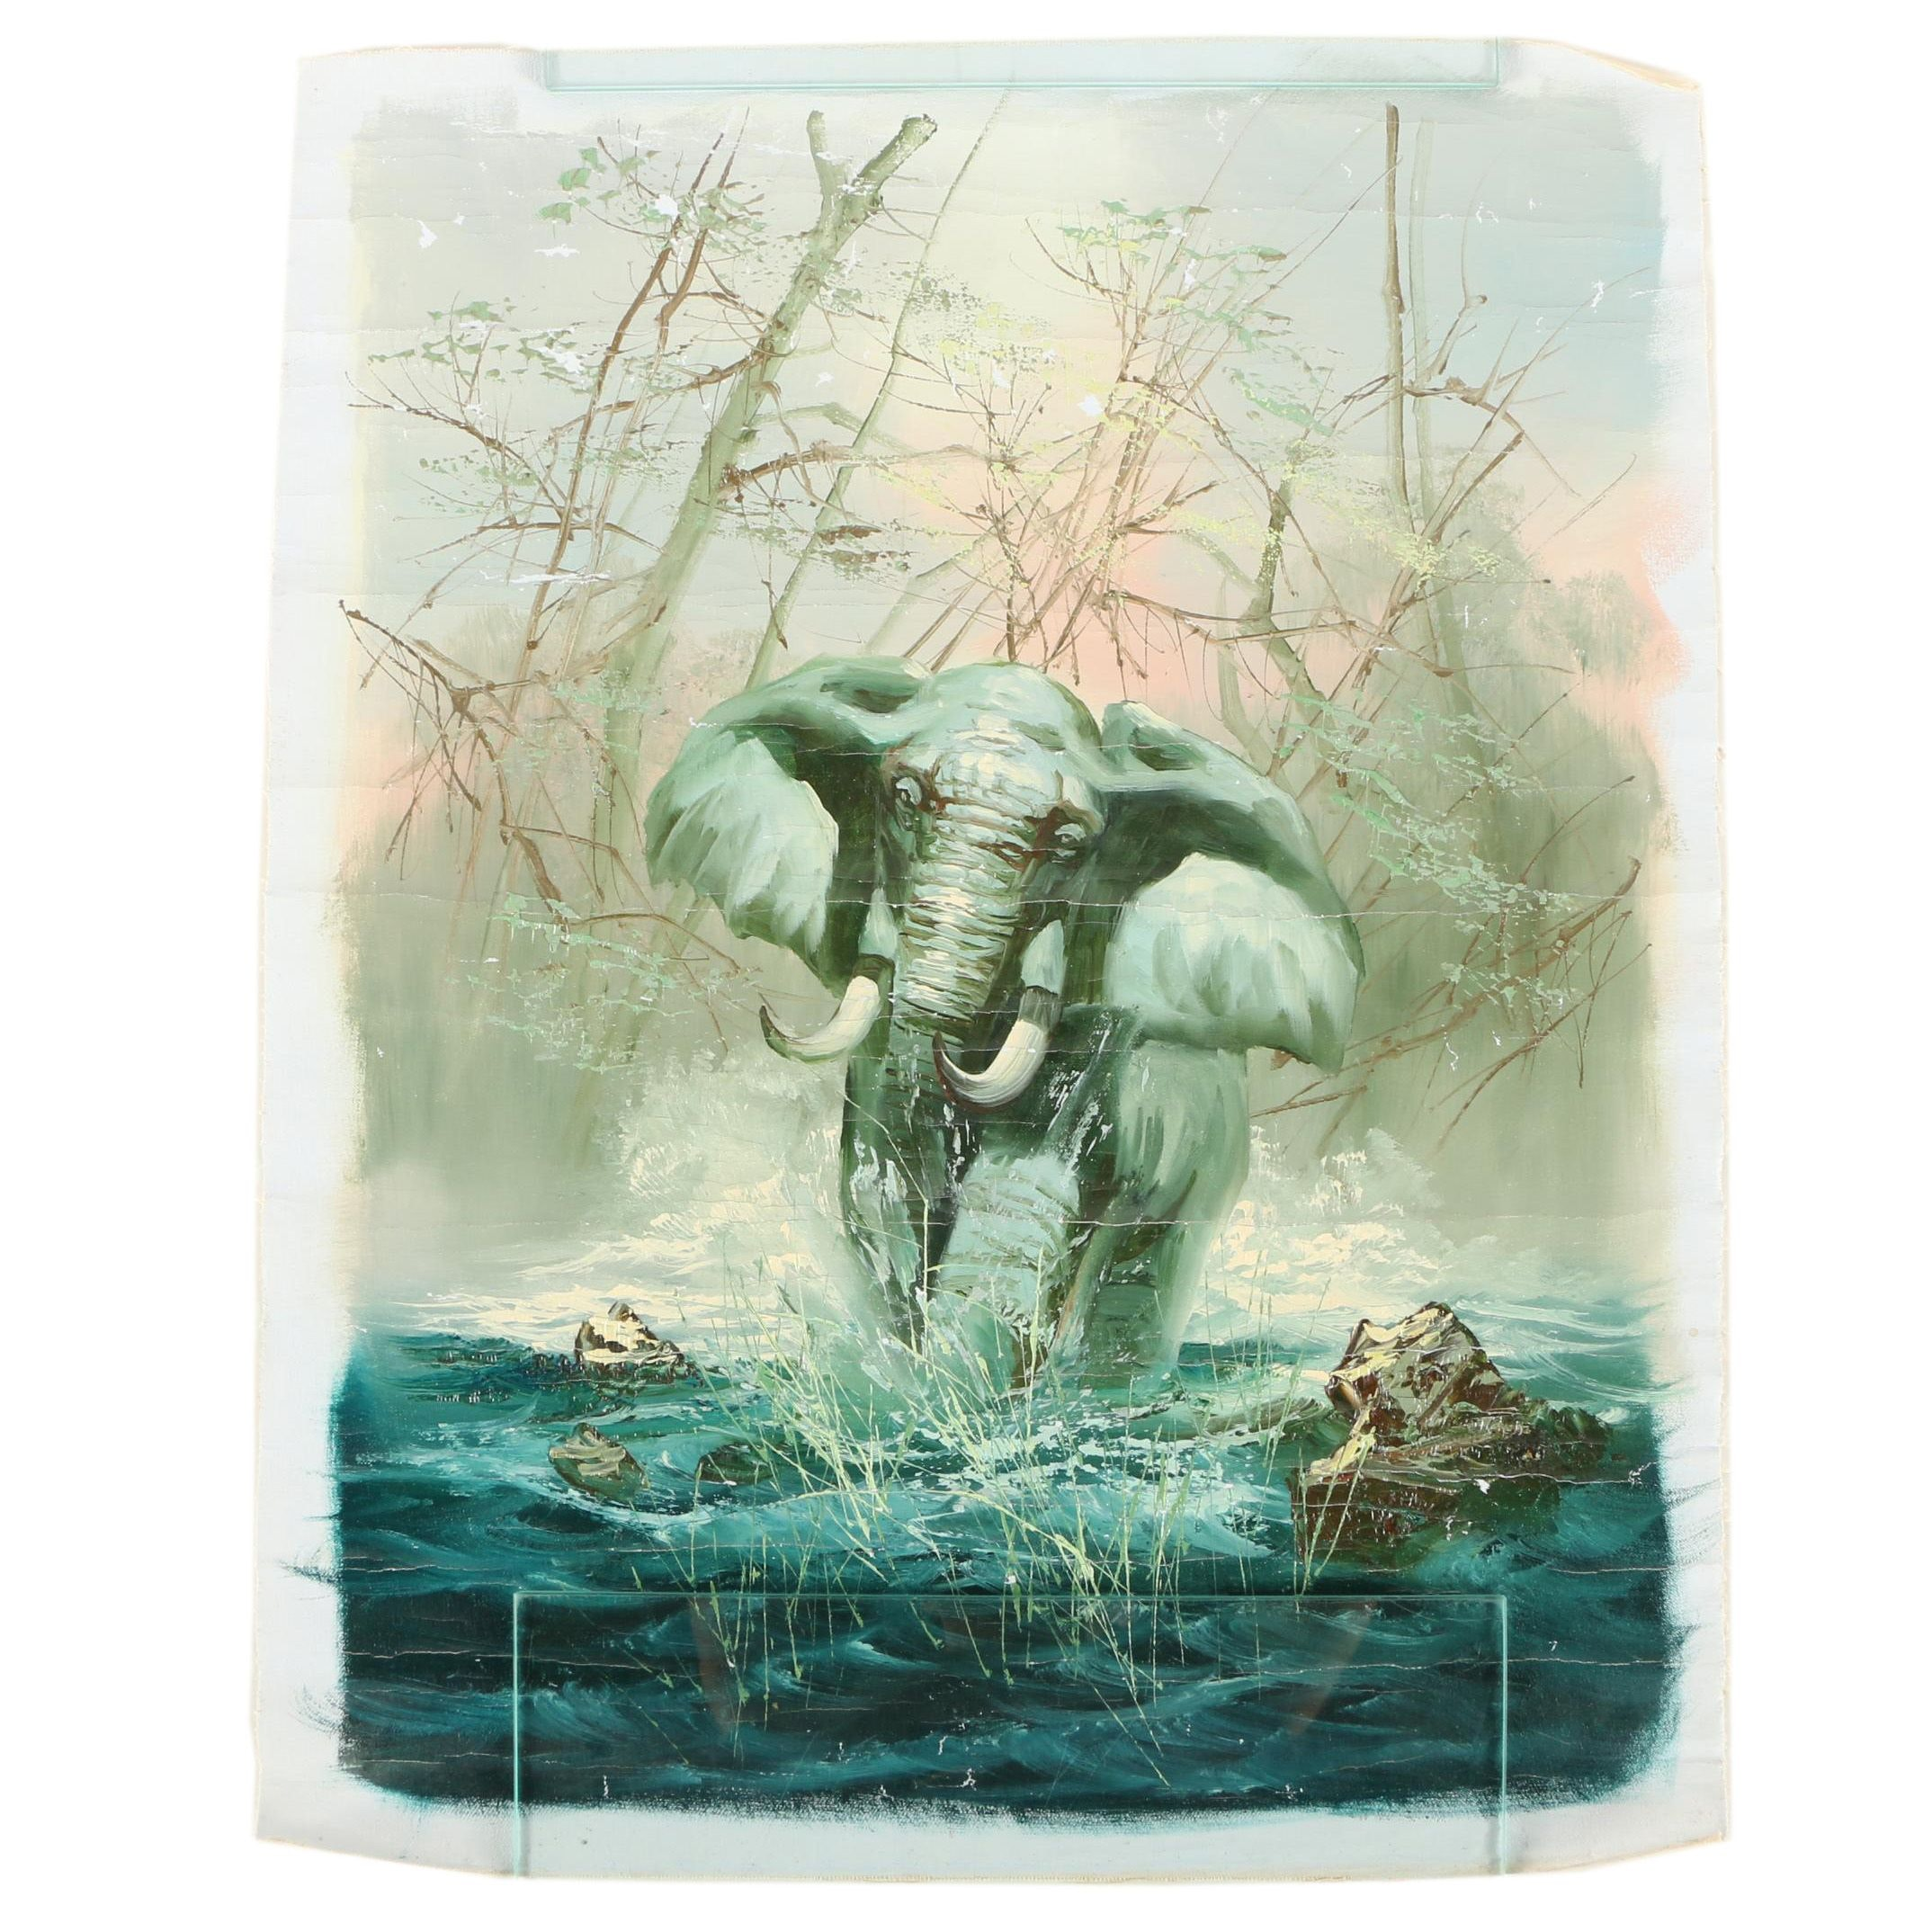 Oil Painting of an Elephant